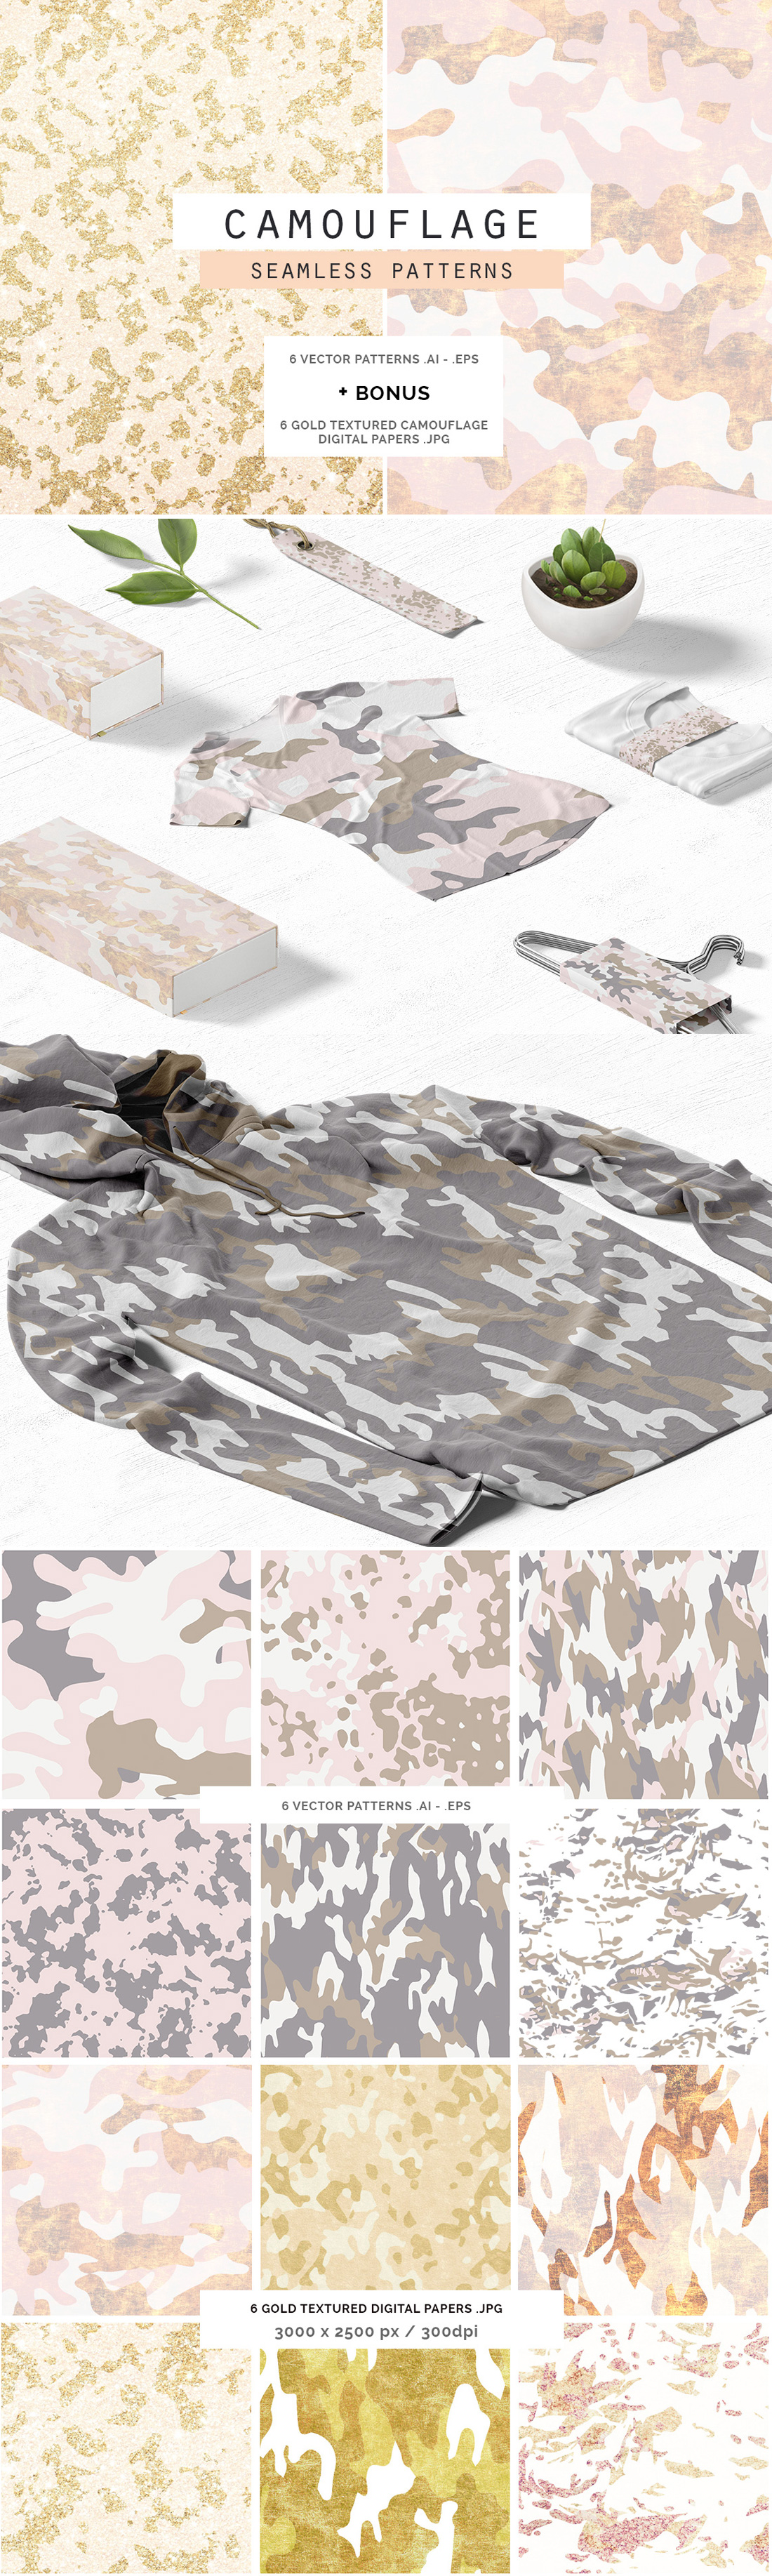 Camouflage Glam Patterns + Papers | Vector pattern, Graphic design ...